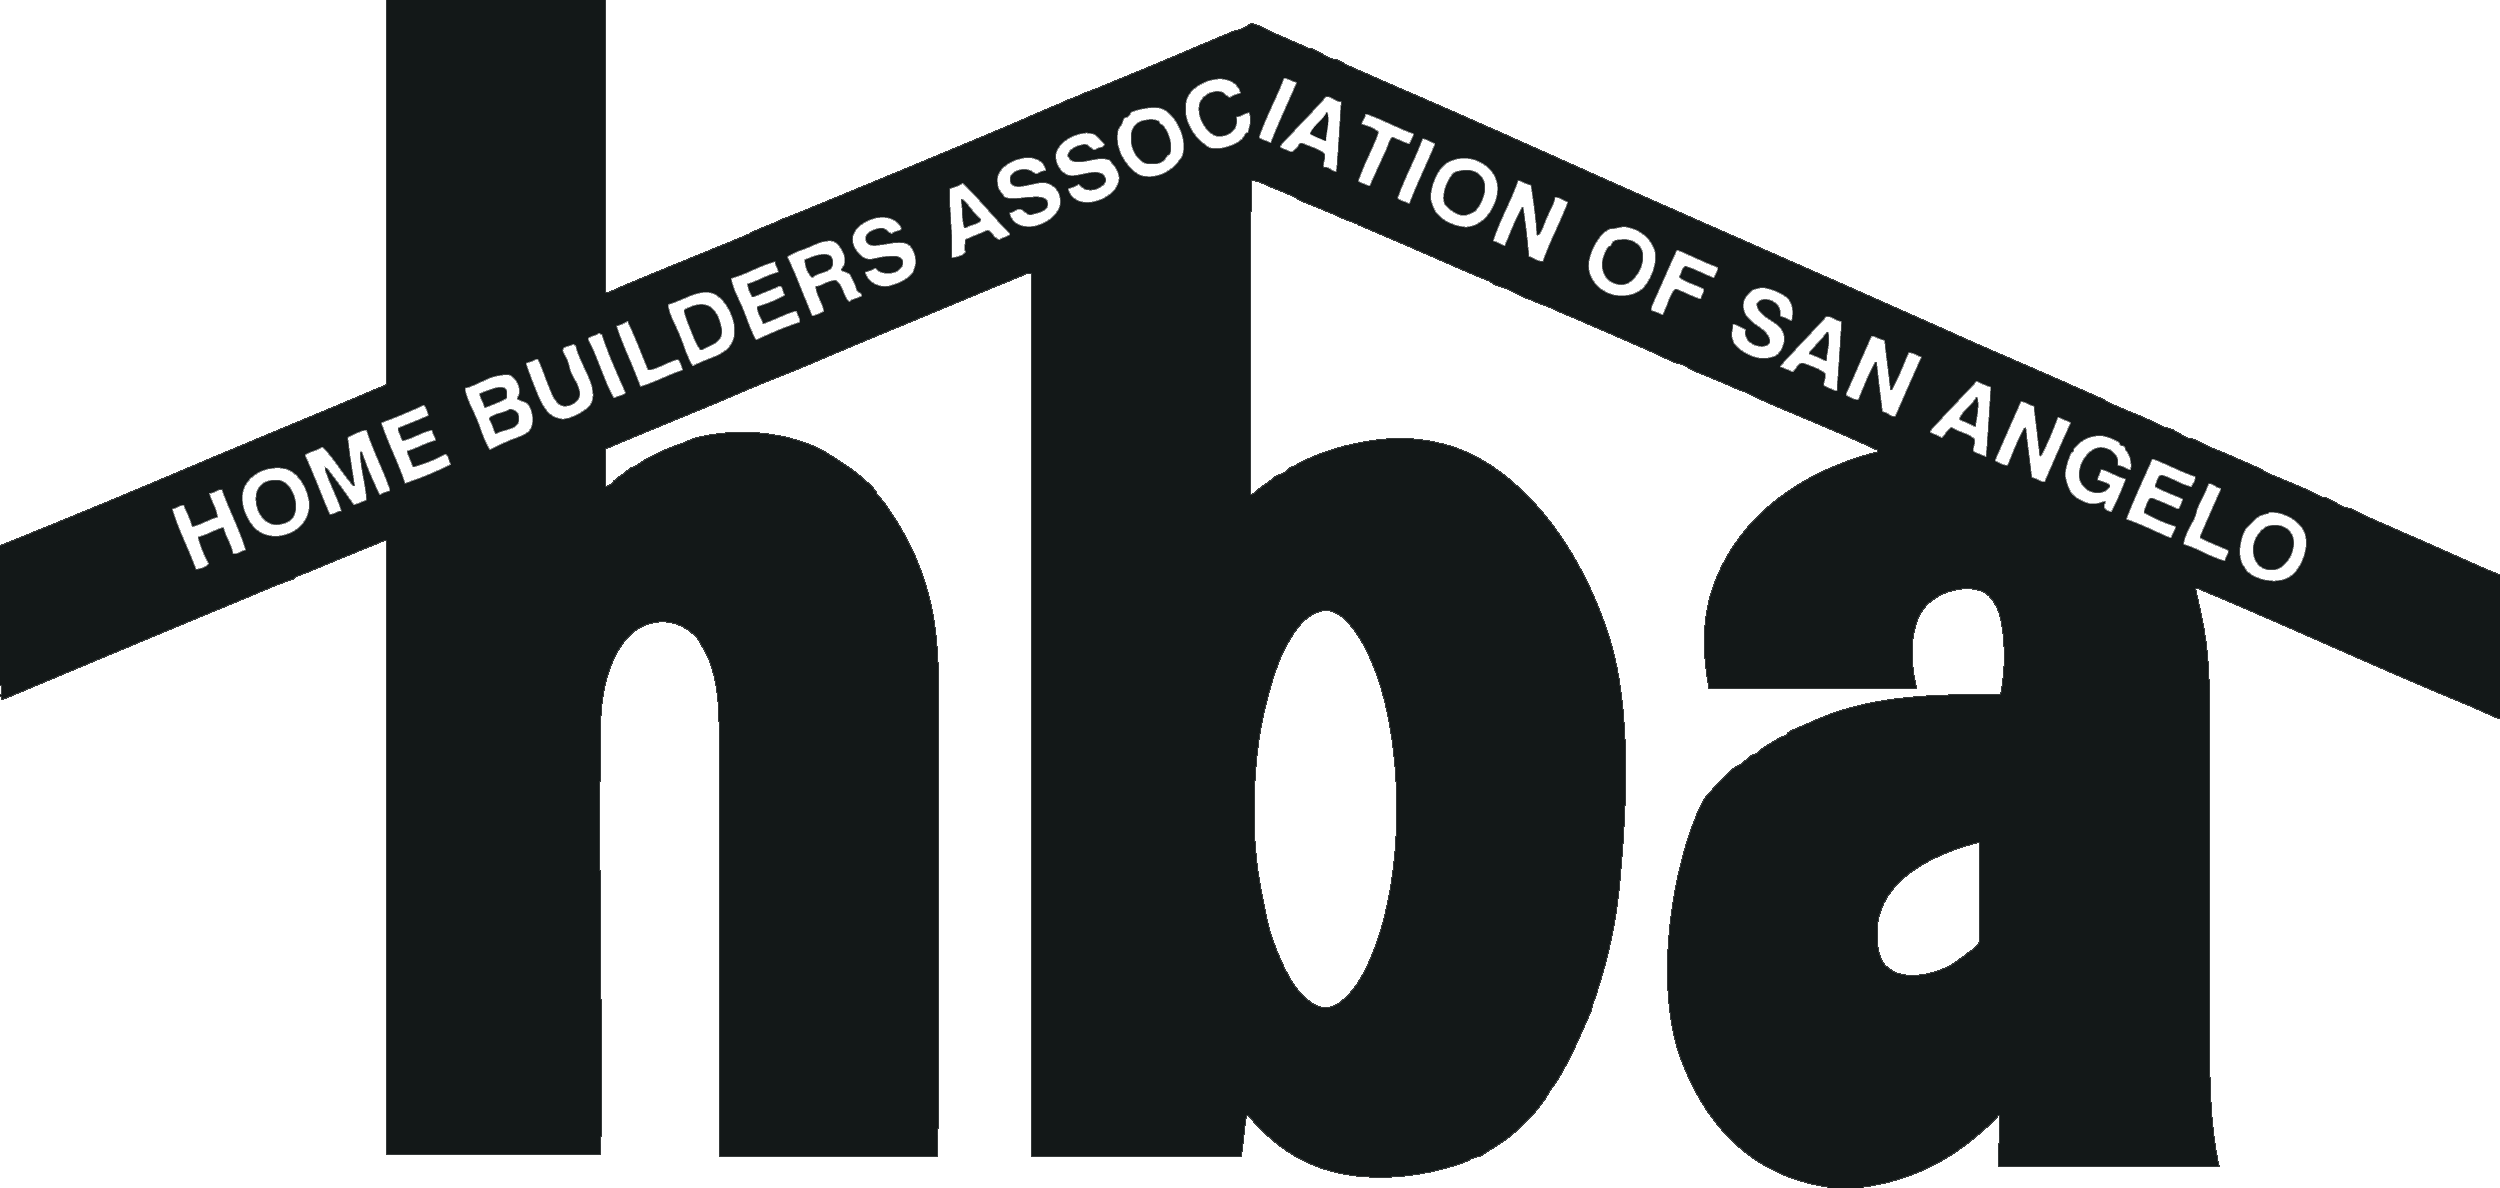 Home Builders Association of San Angelo